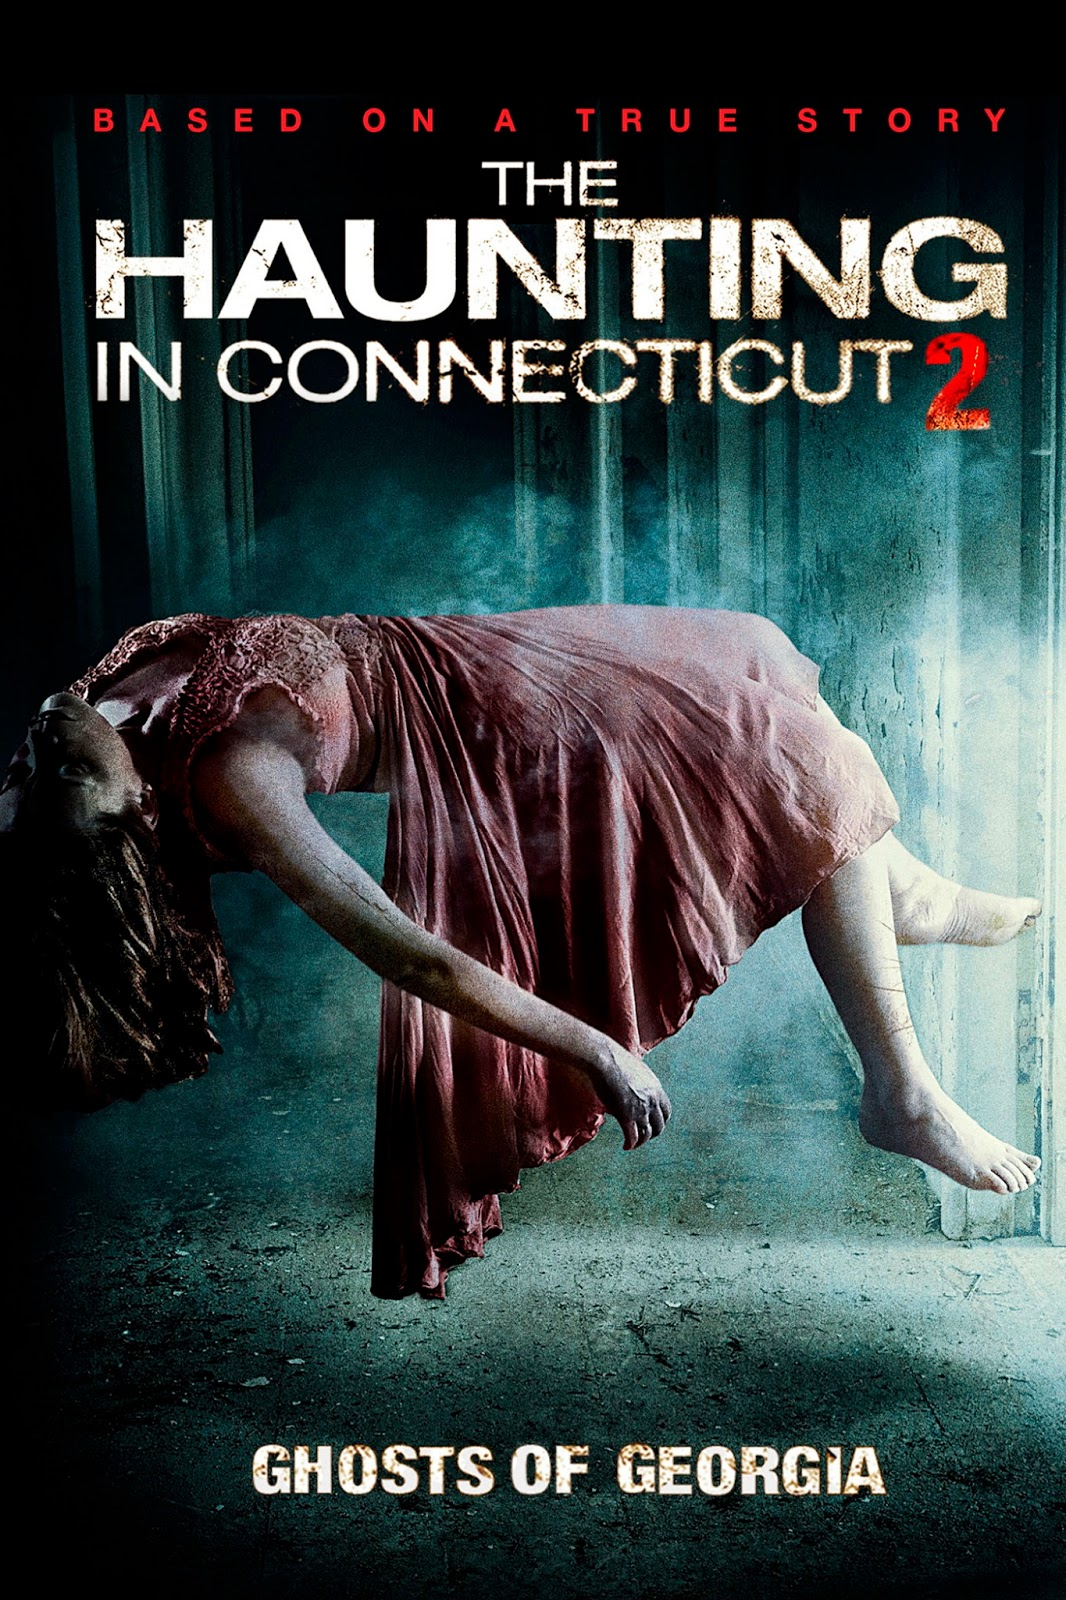 The Haunting in Connecticut 2 (2013) Poster